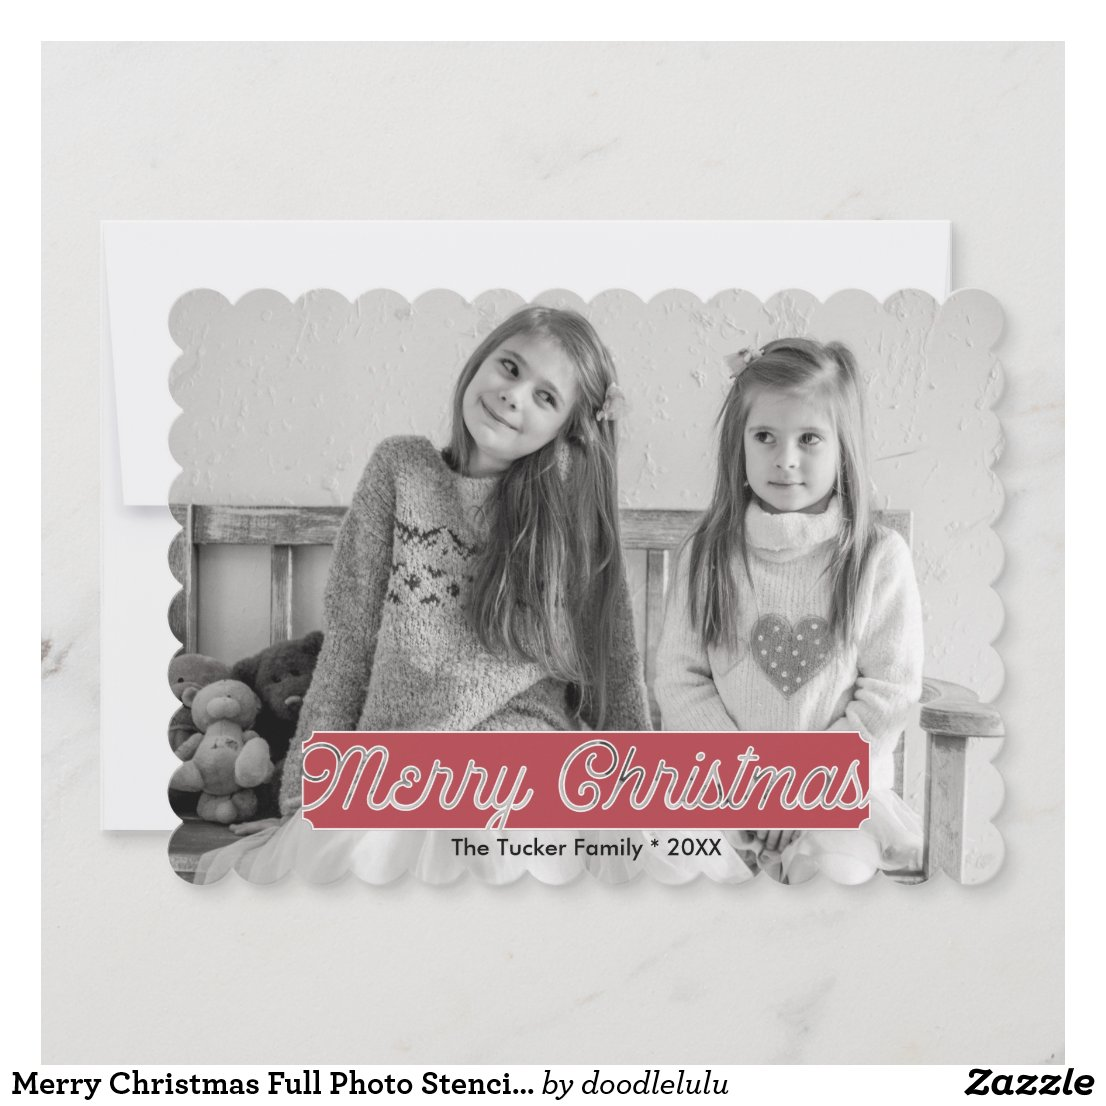 Merry Christmas Full Photo Stencil Overlay Holiday Card